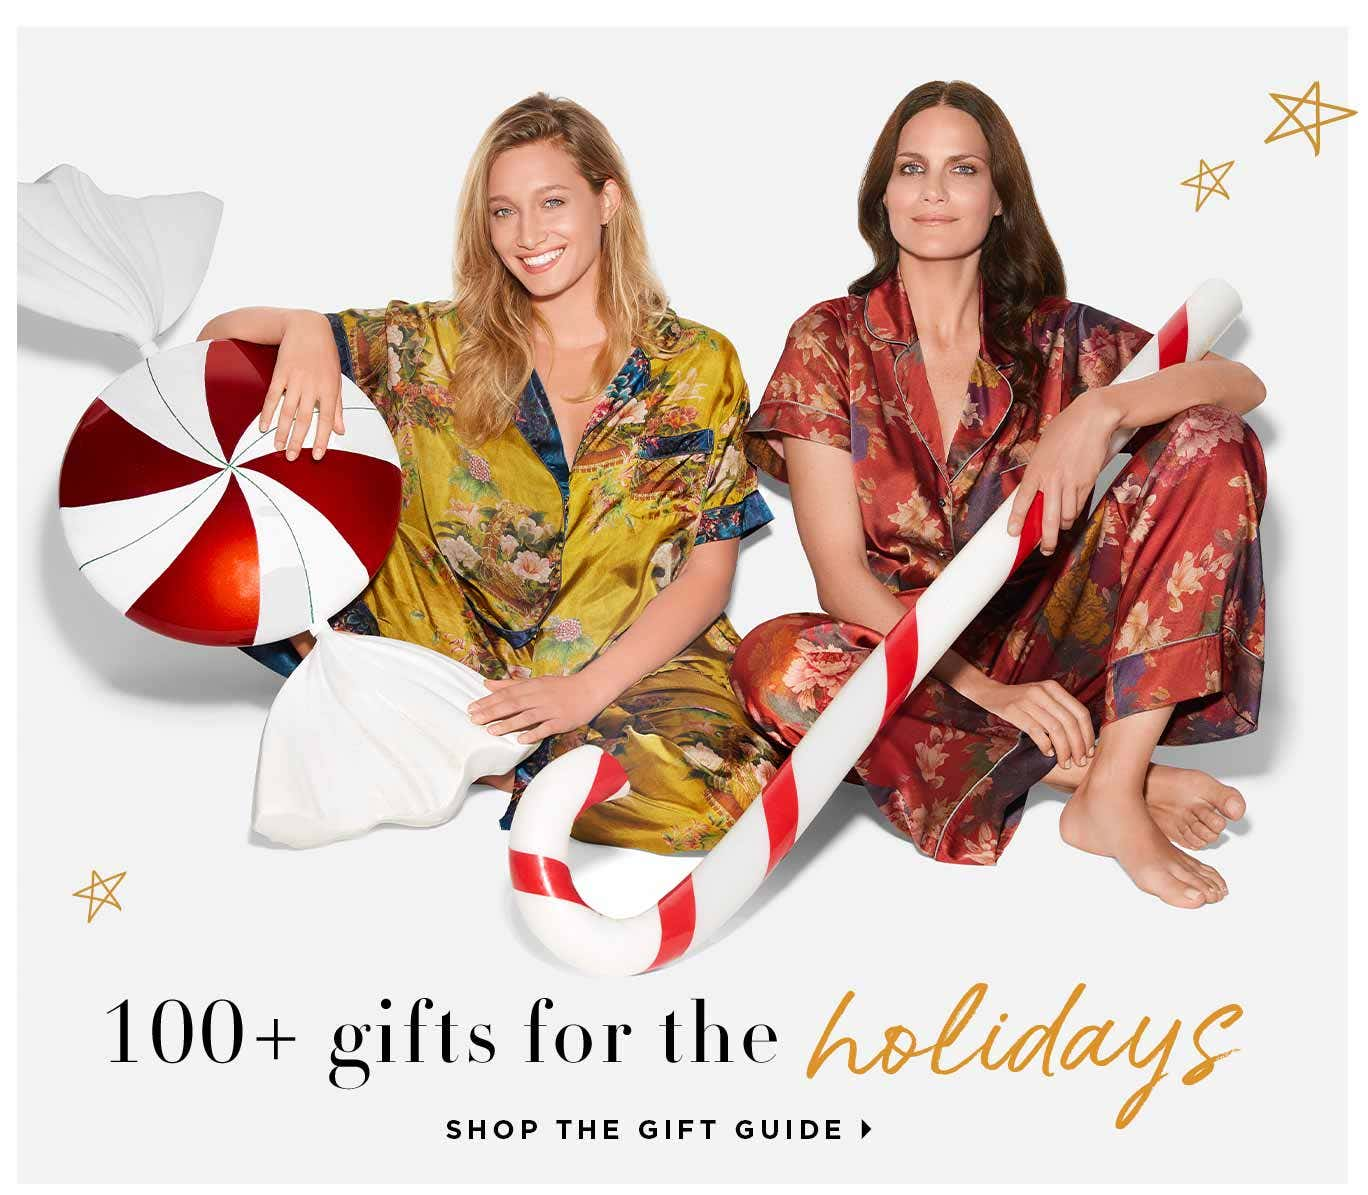 Shop 100+ Gifts for the Holidays - Shop the Gift Guide